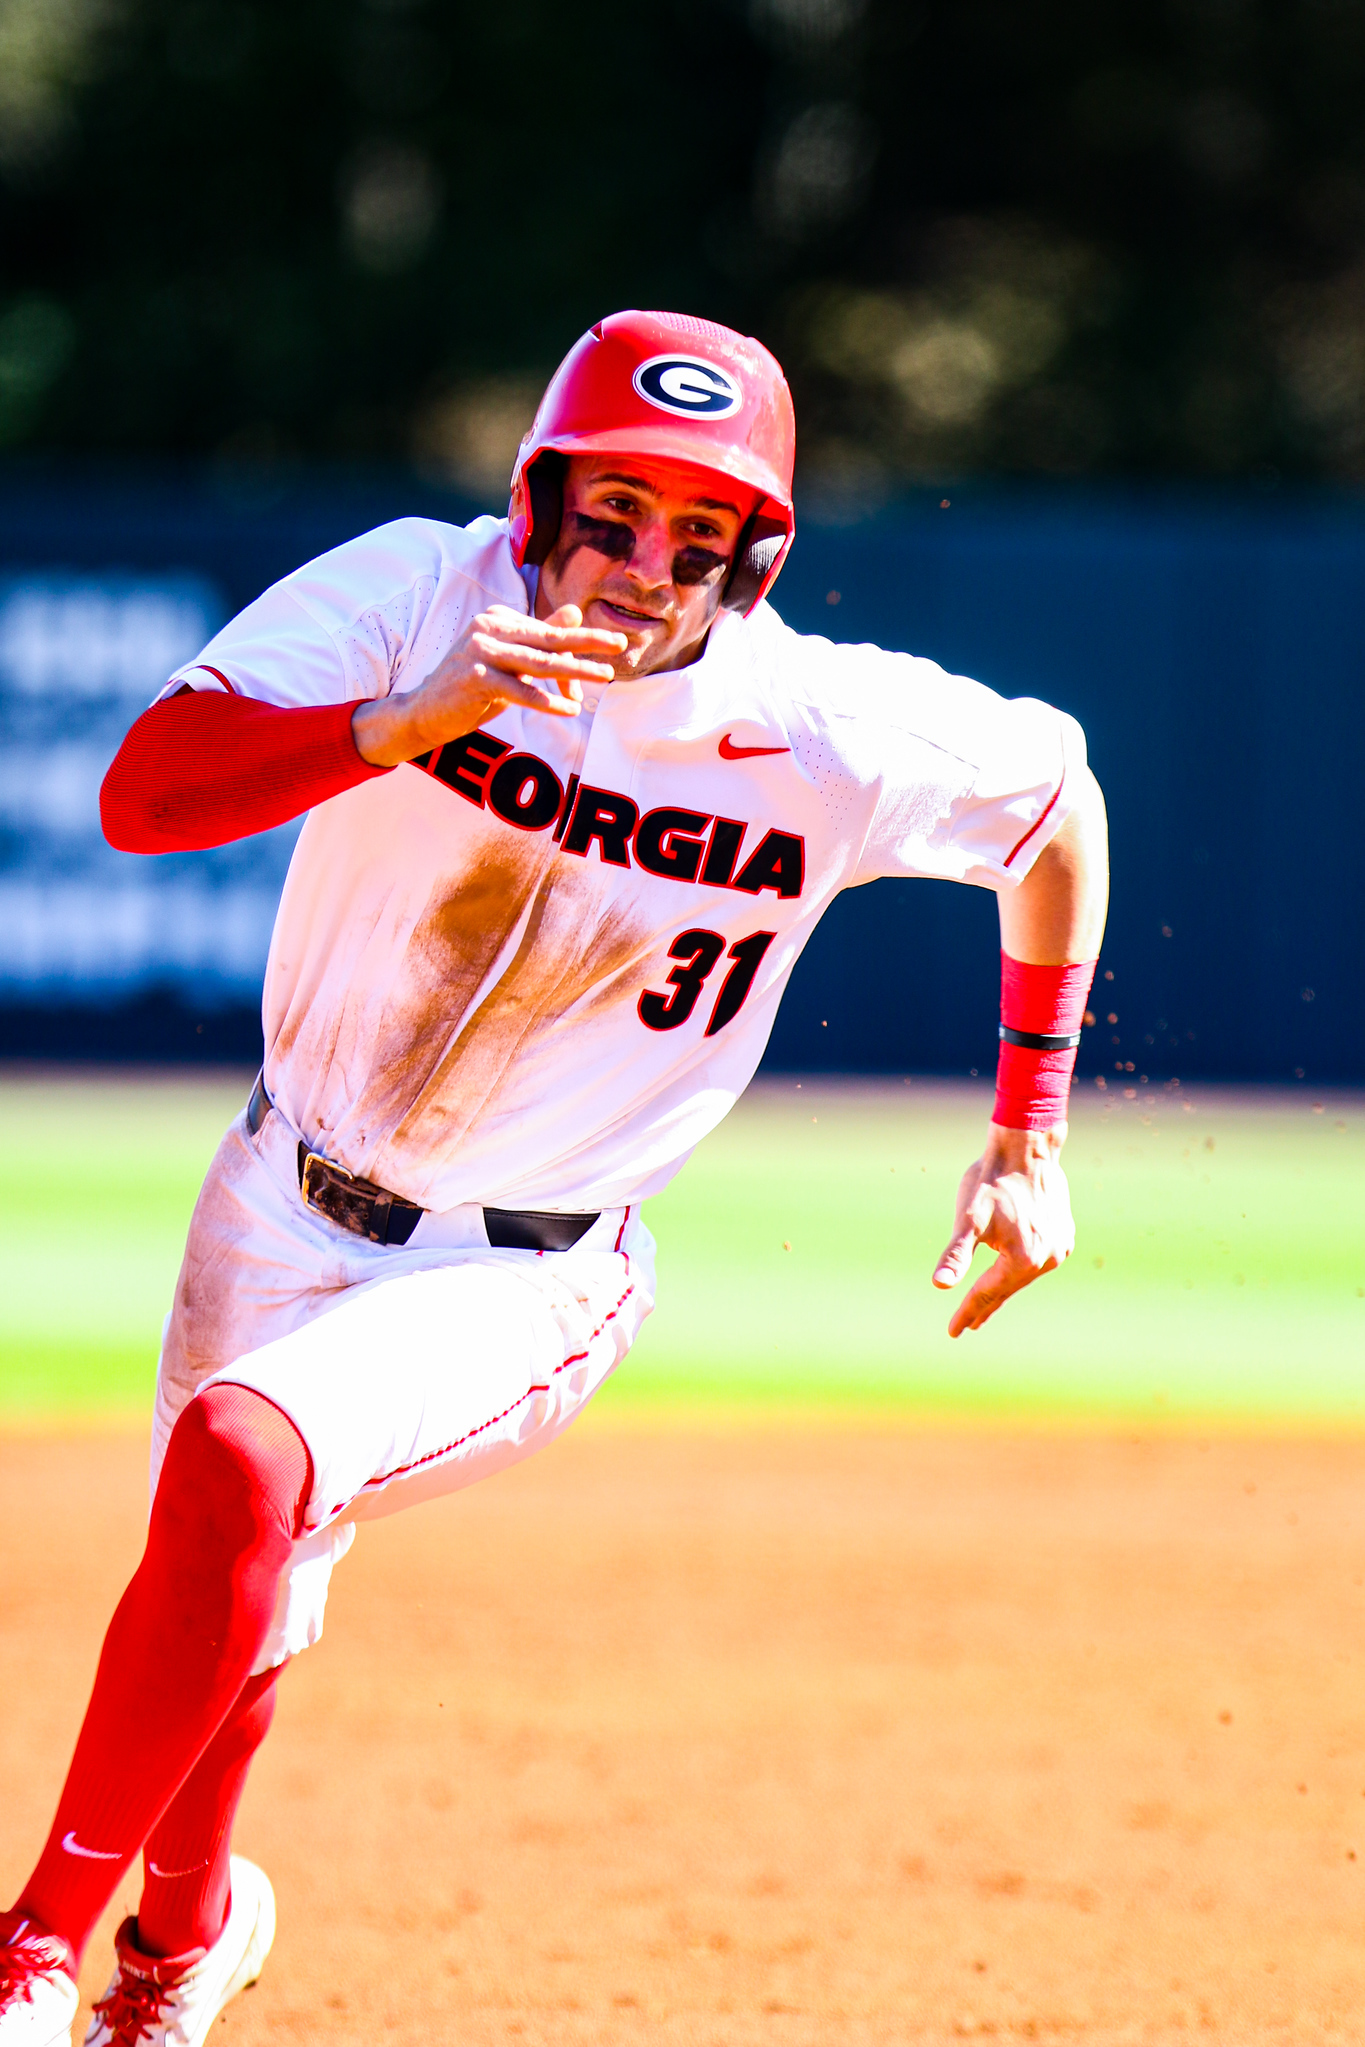 Georgia infielder and outfielder Riley King (31) during a game against UMass at Foley Field in Athens, Ga., on Saturday, March 7, 2020. (Photo by Tony Walsh)